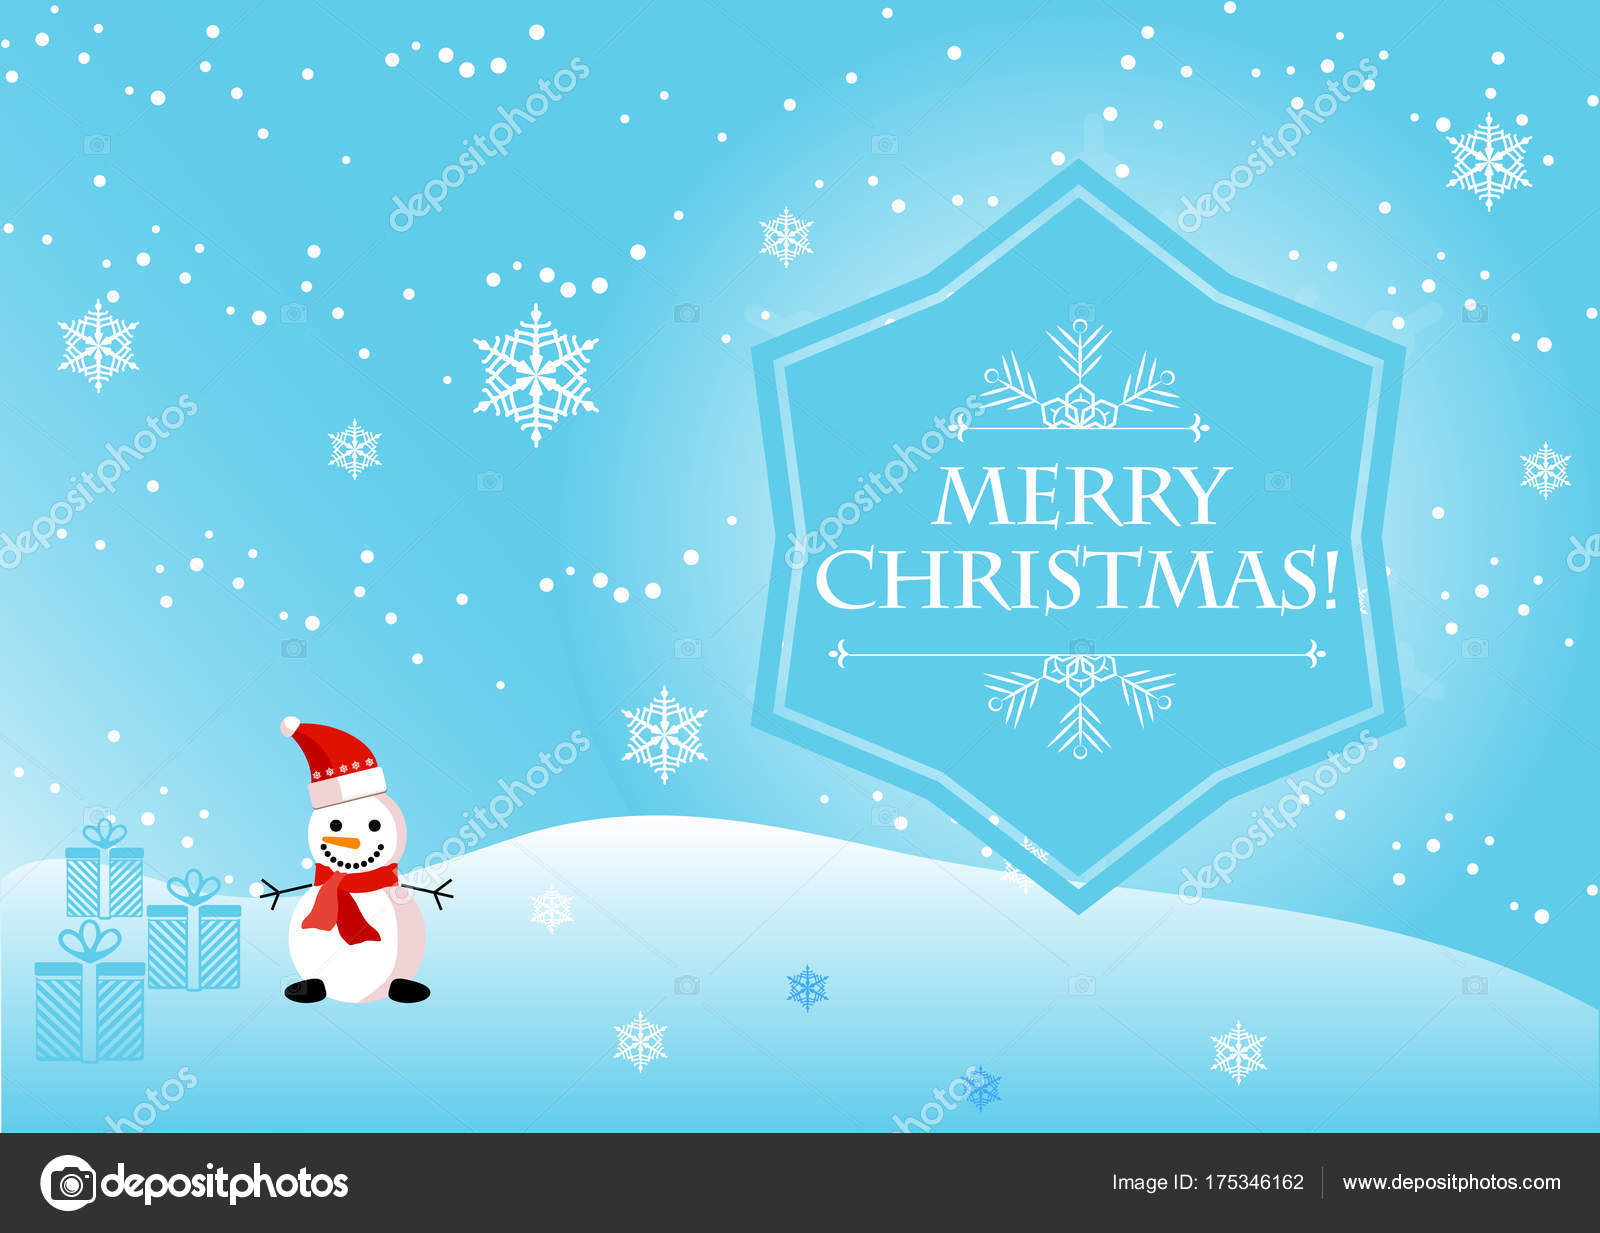 new year background snowflakes websites vector illustration stock vector